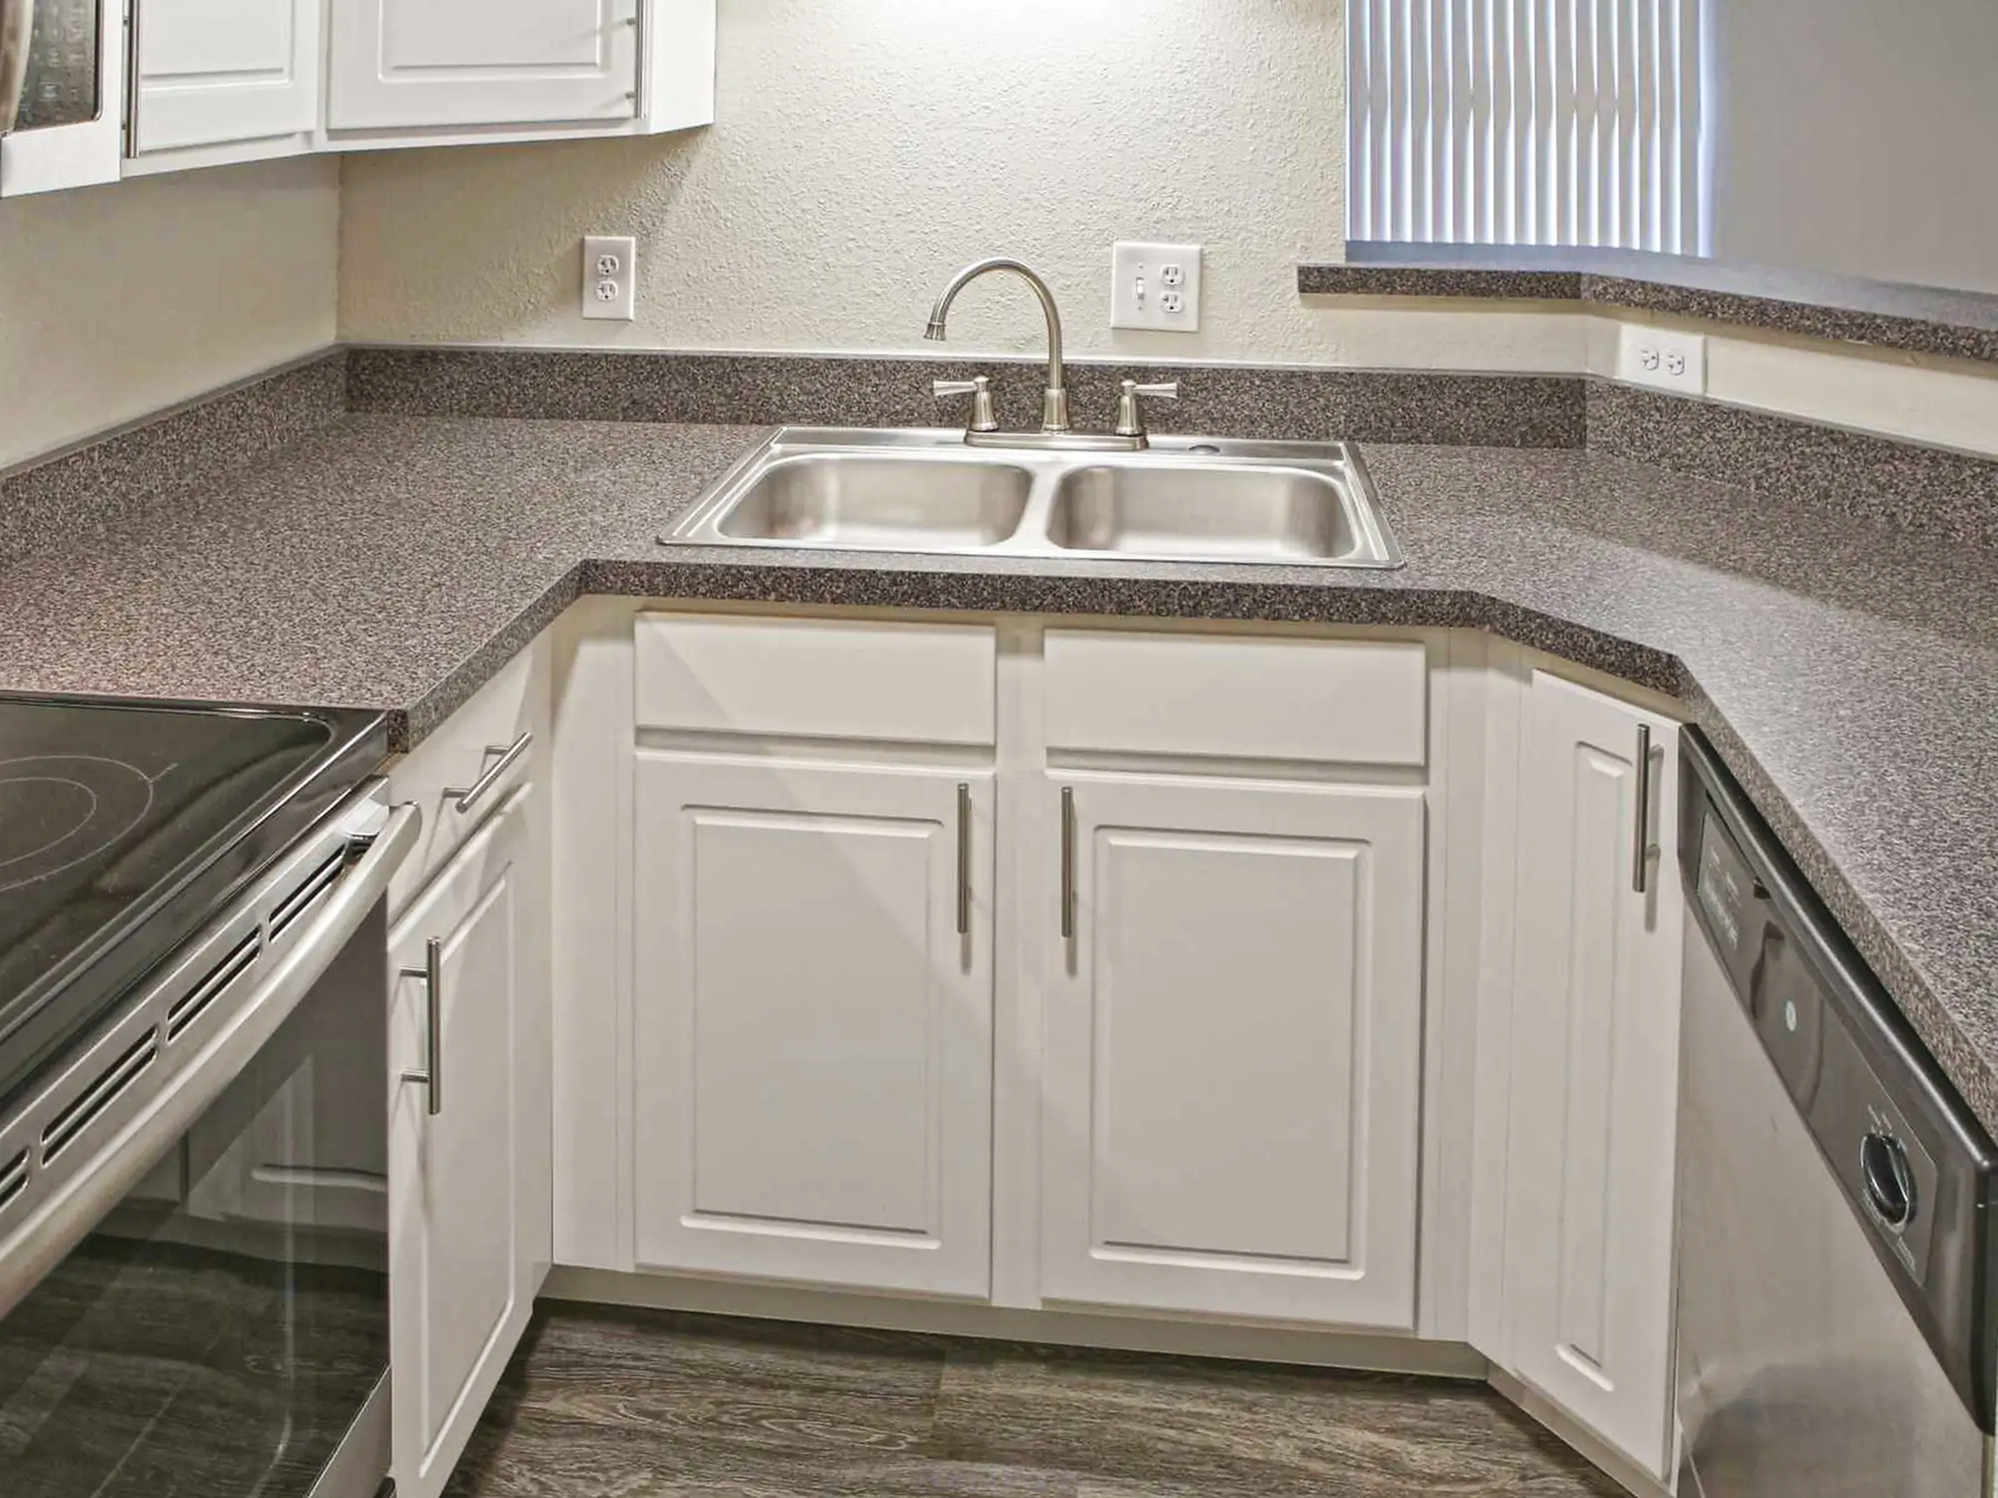 Image of Granite-Style Countertops for The Commons